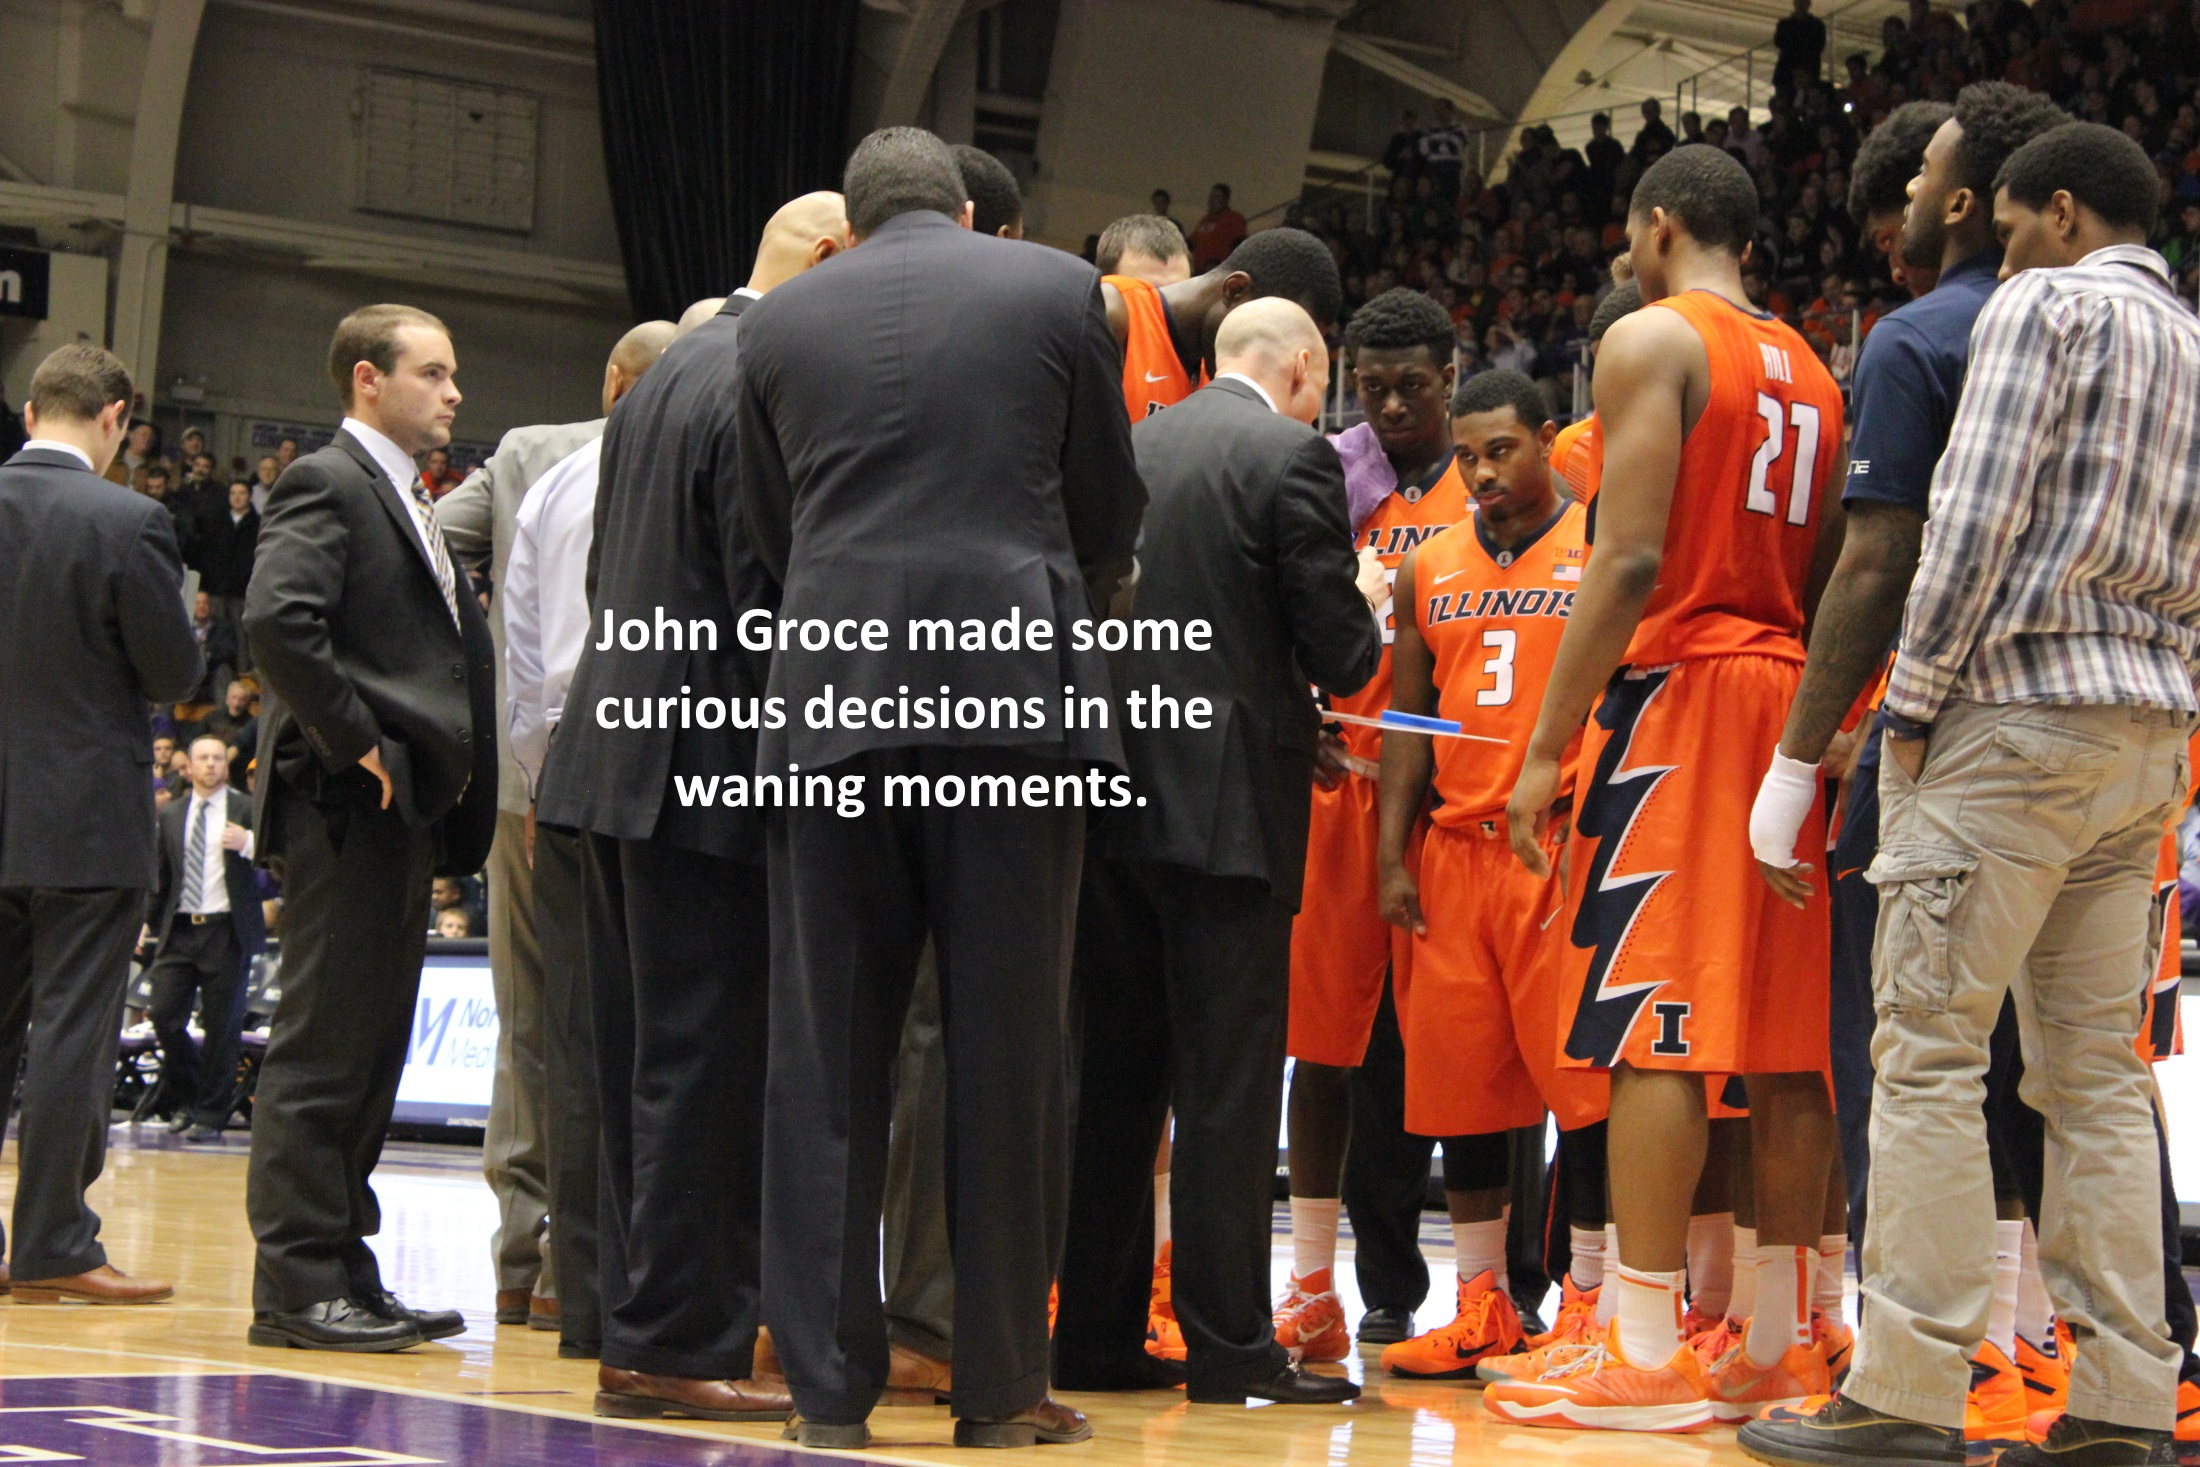 John Groce curious decisions waning moments